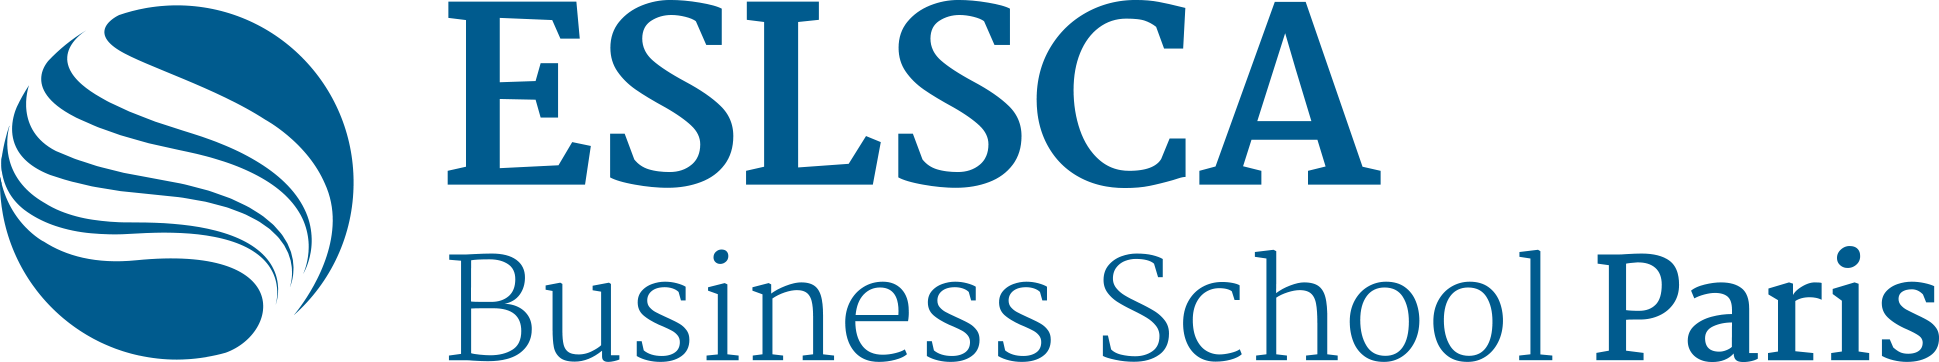 Logo ESLSCA Business School Paris